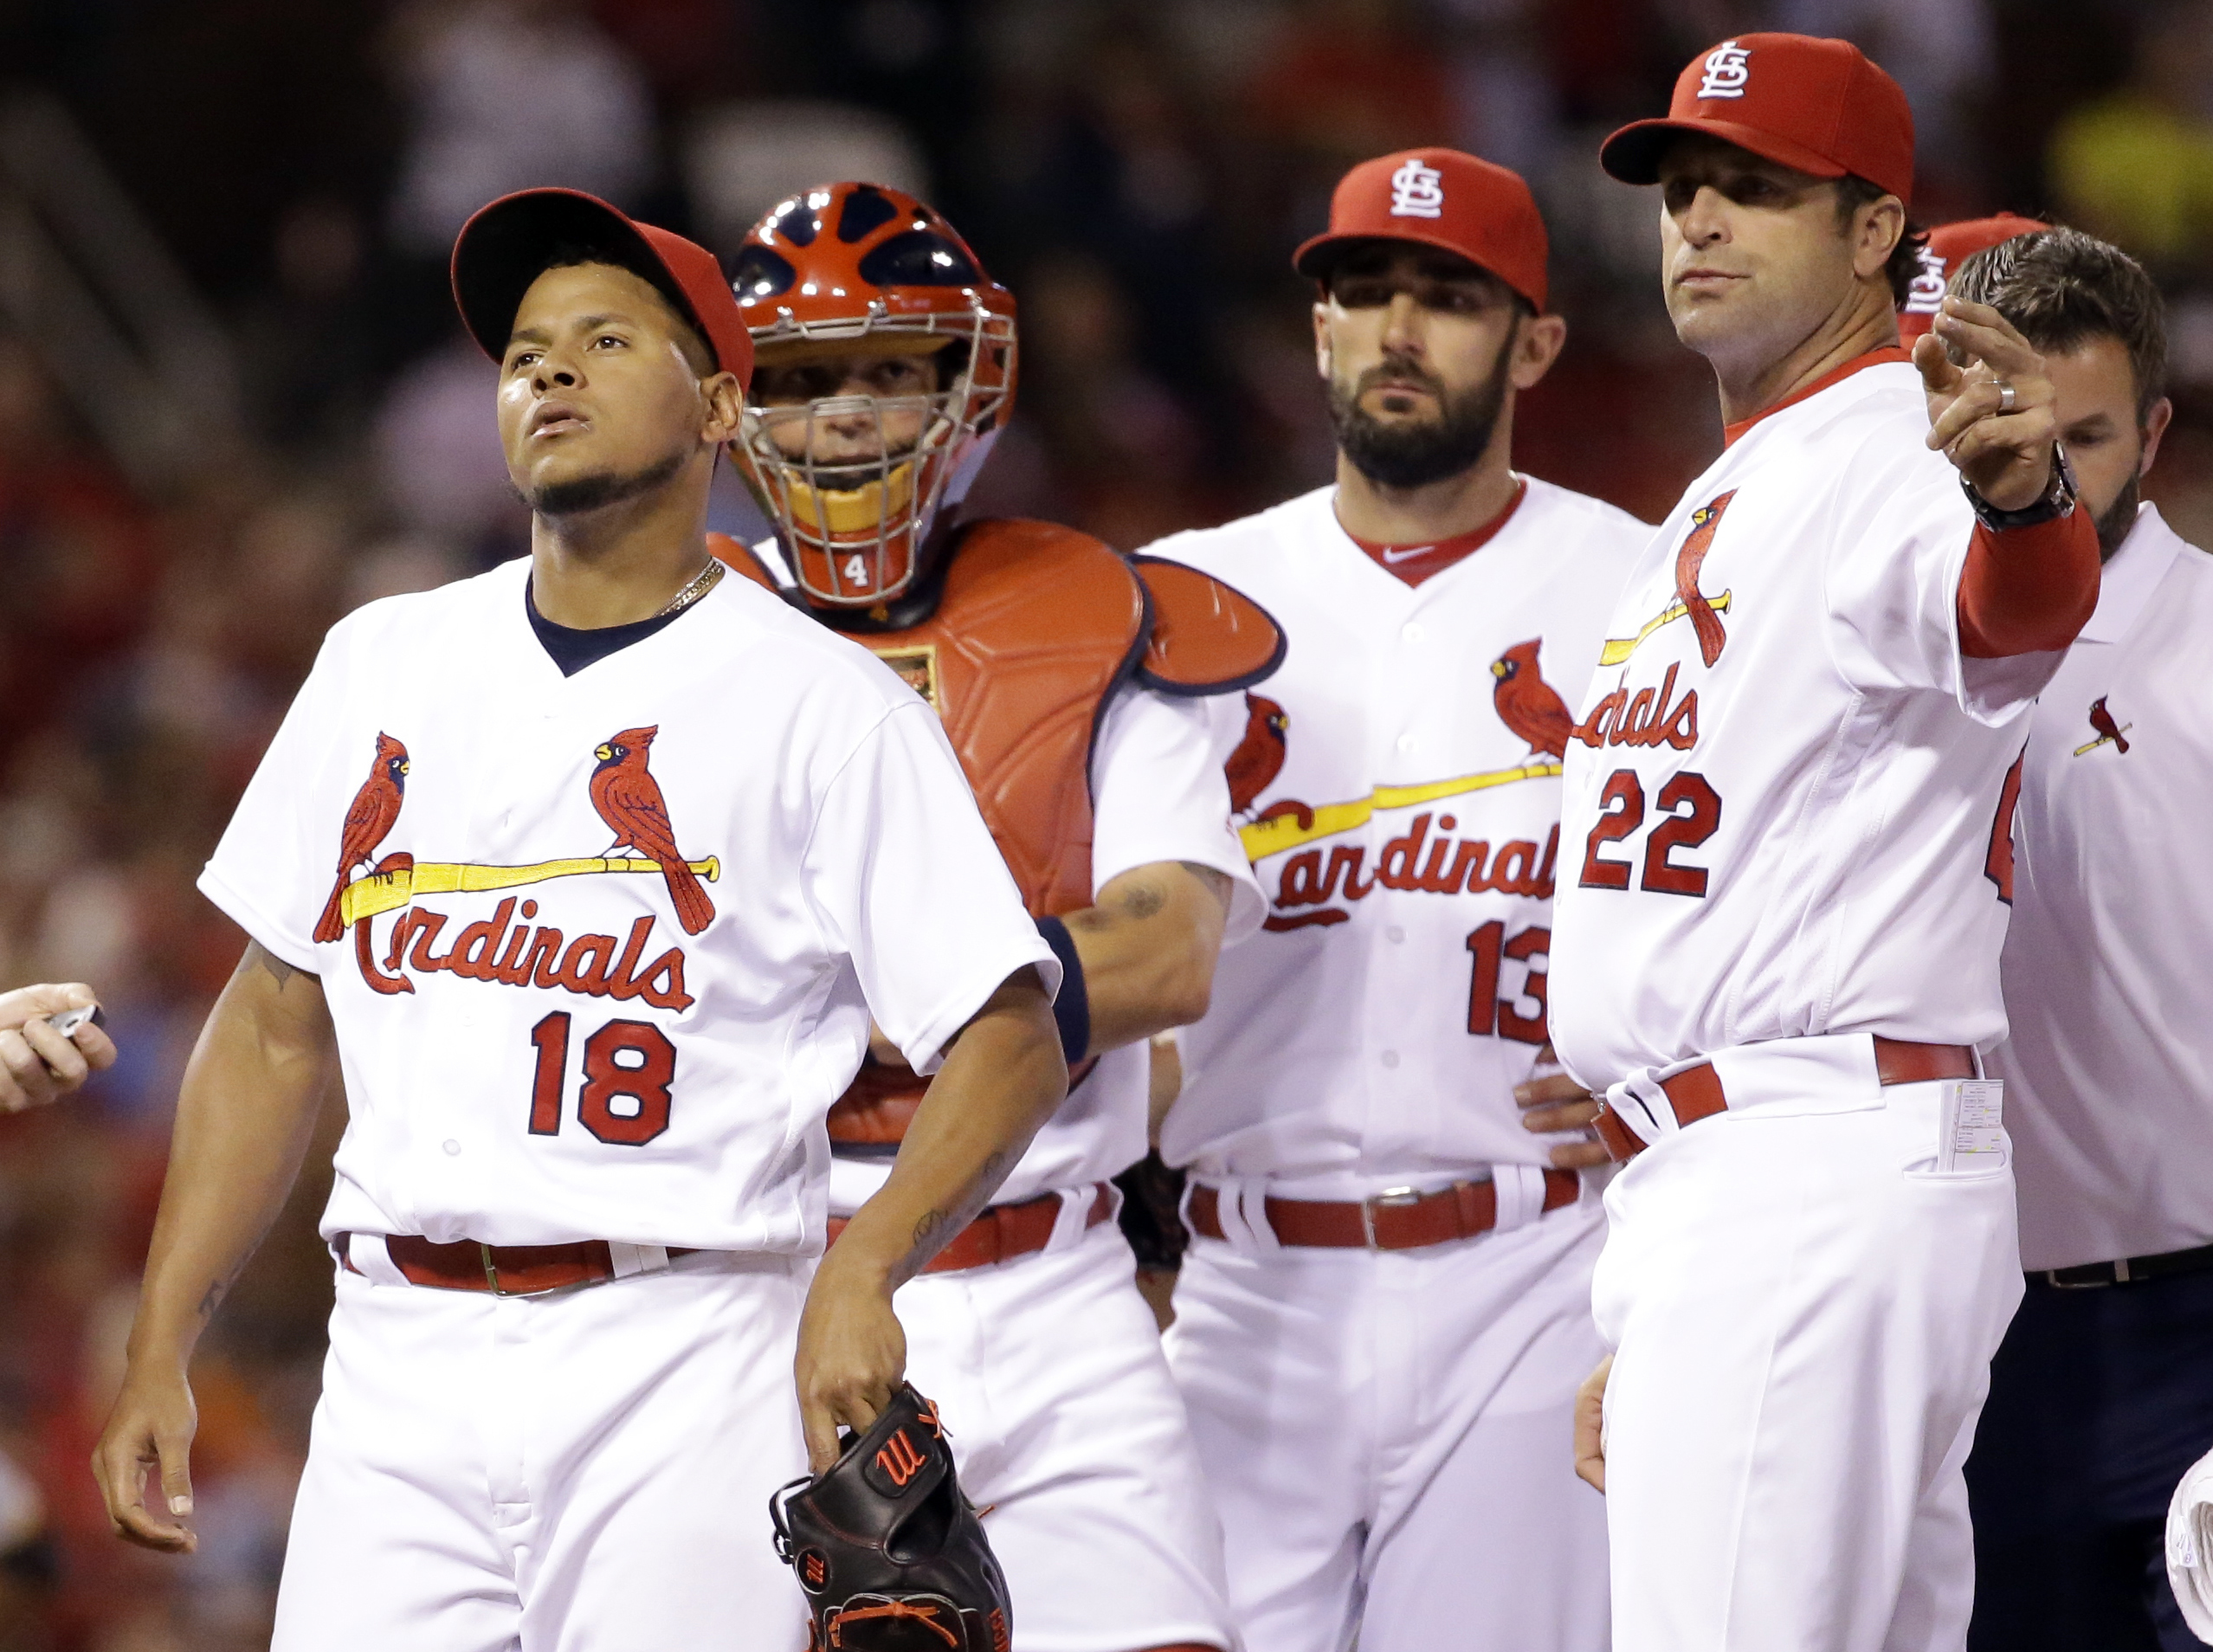 St. Louis Cardinals starting pitcher Carlos Martinez, left, leaves the game as Cardinals manager Mike Matheny, right, calls for a new pitcher while catcher Yadier Molina, second from left, and Matt Carpenter watch during the fourth inning of a baseball ga